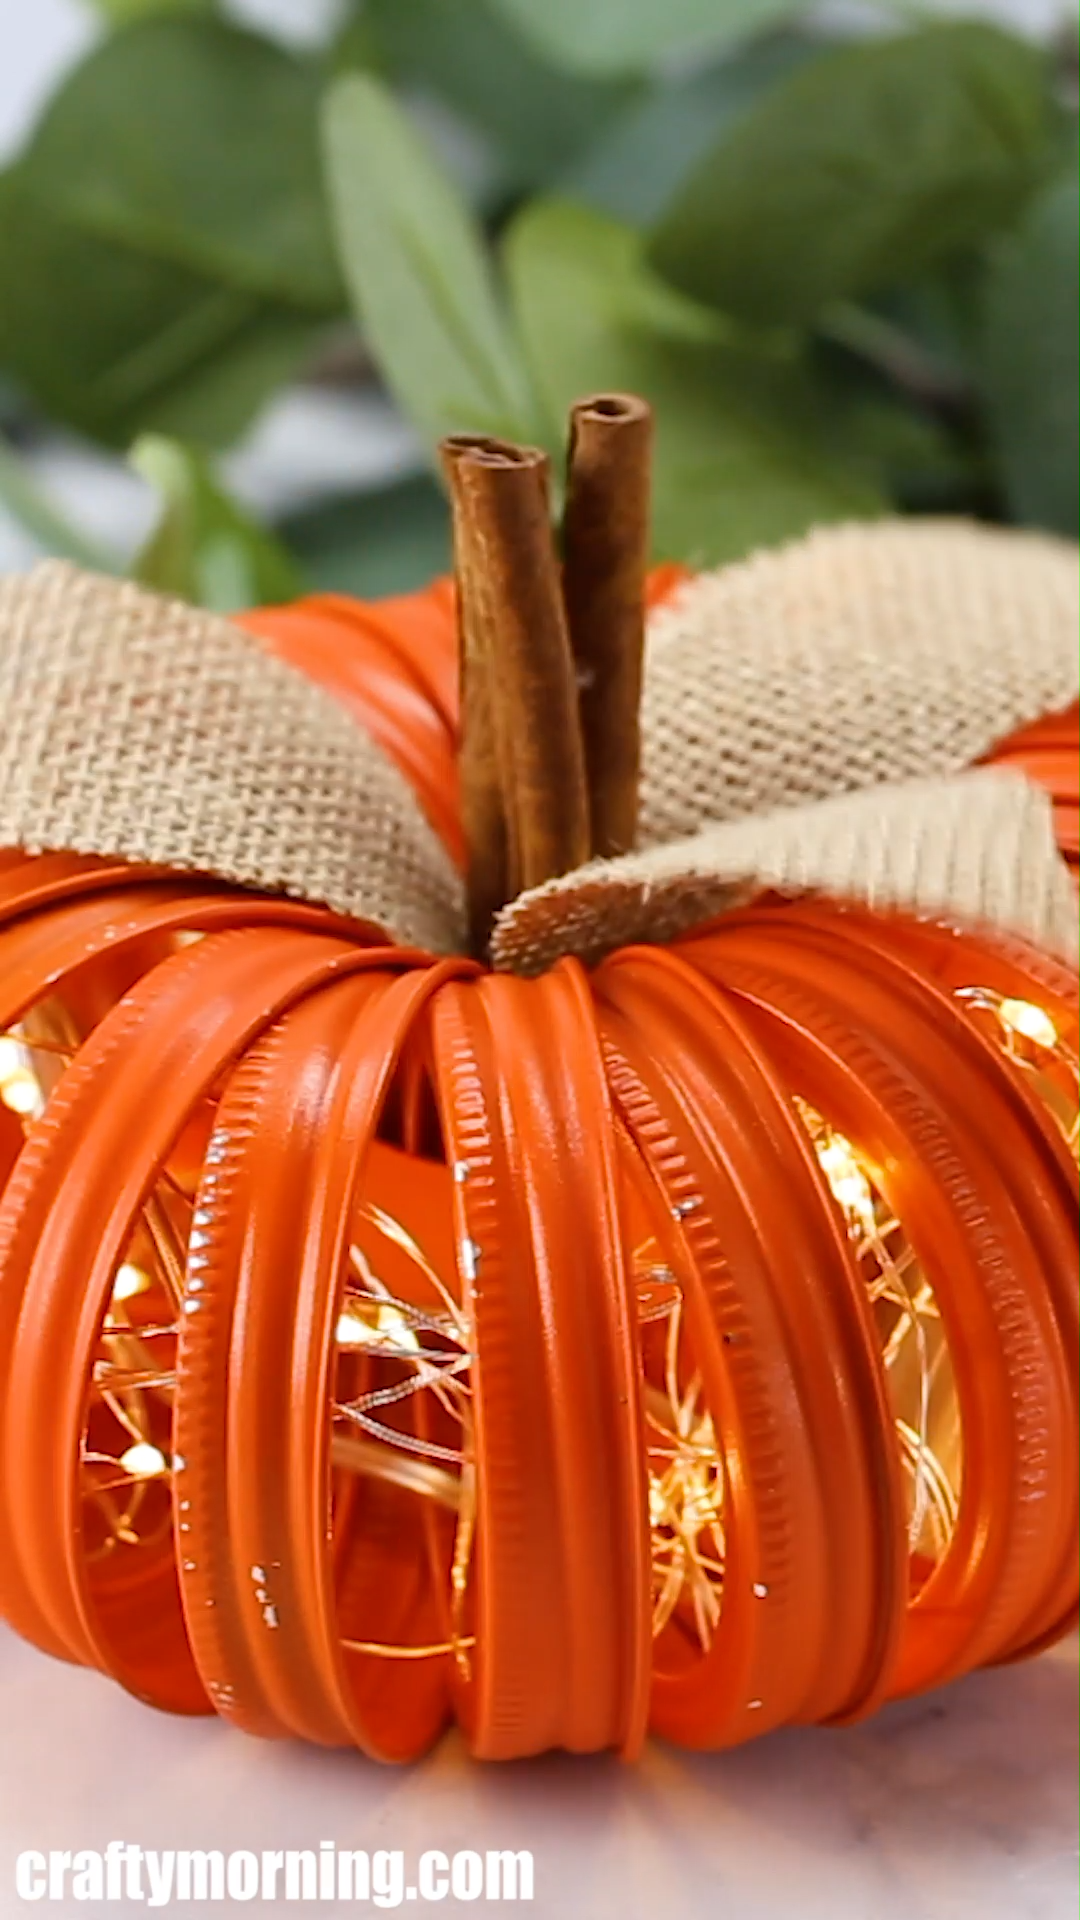 Mason Jar Lid Lighted Pumpkin- adorable fall DIY project craft to make. Halloween home decoration for inside. Lights inside so it looks cool at night. Fun pumpkin decor.